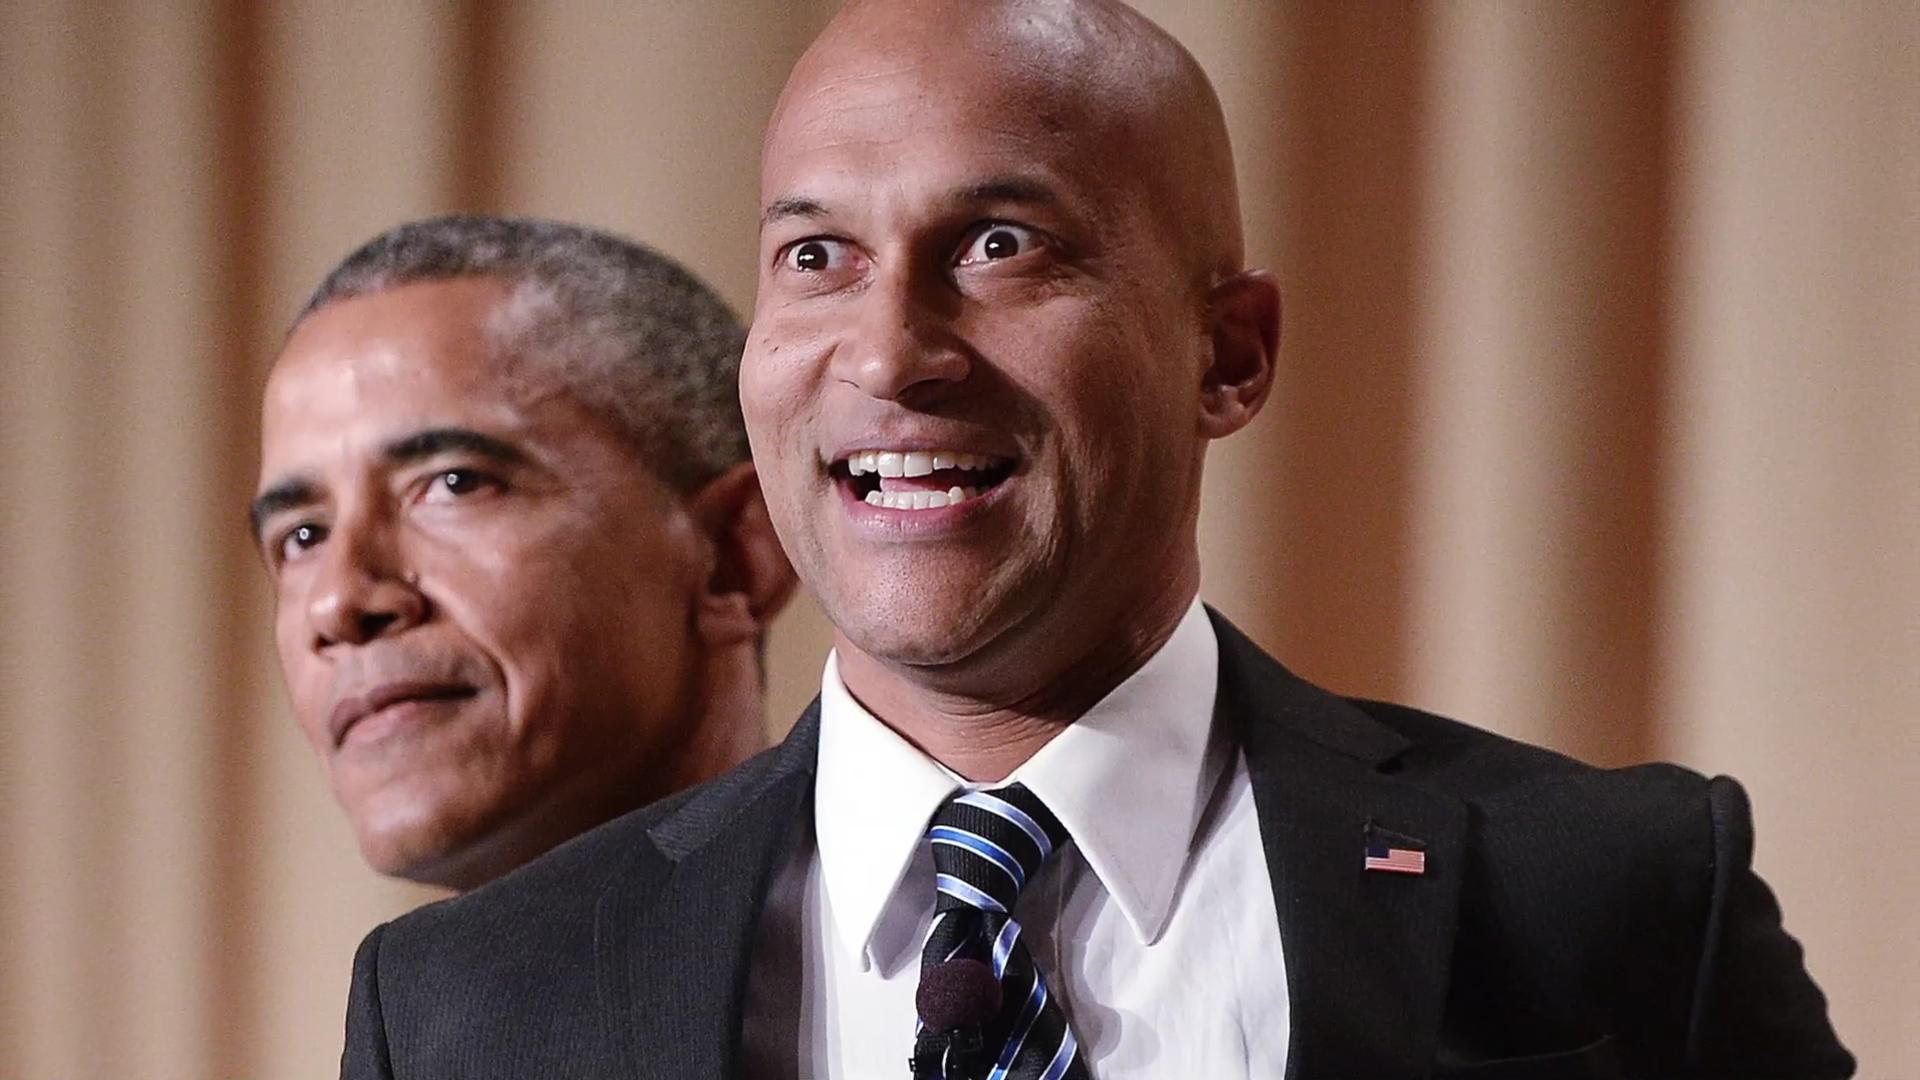 Meet President Obama's 'anger translator'